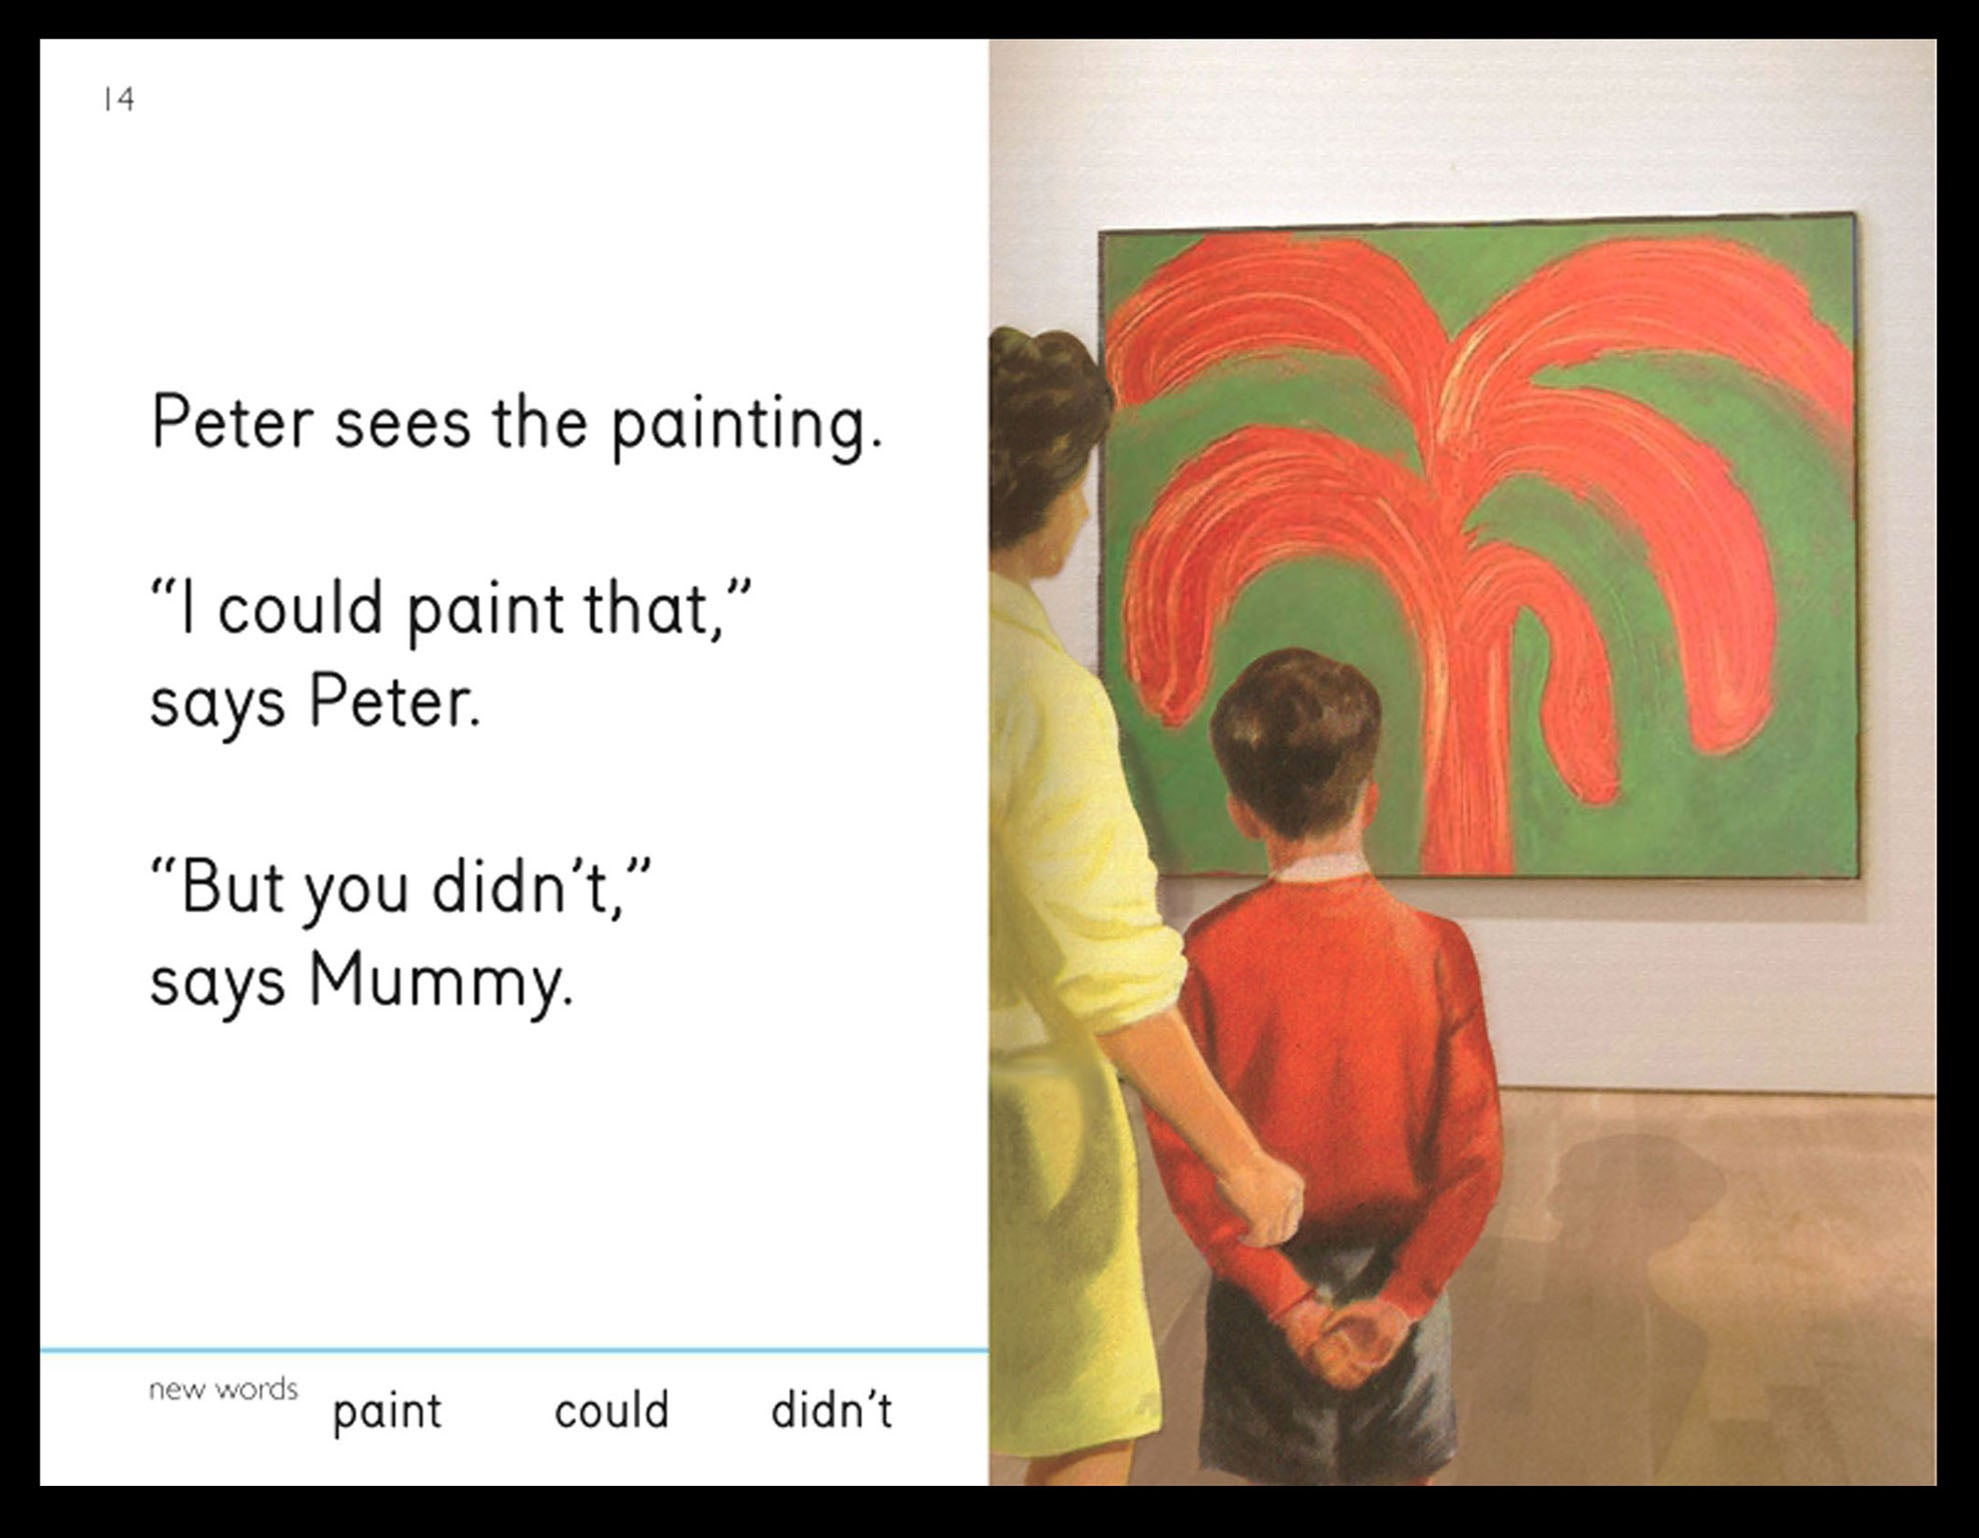 Mummy I Could Have Done That New Book Pokes Fun At Modern Art The Independent The Independent How to keep a mummy. book pokes fun at modern art